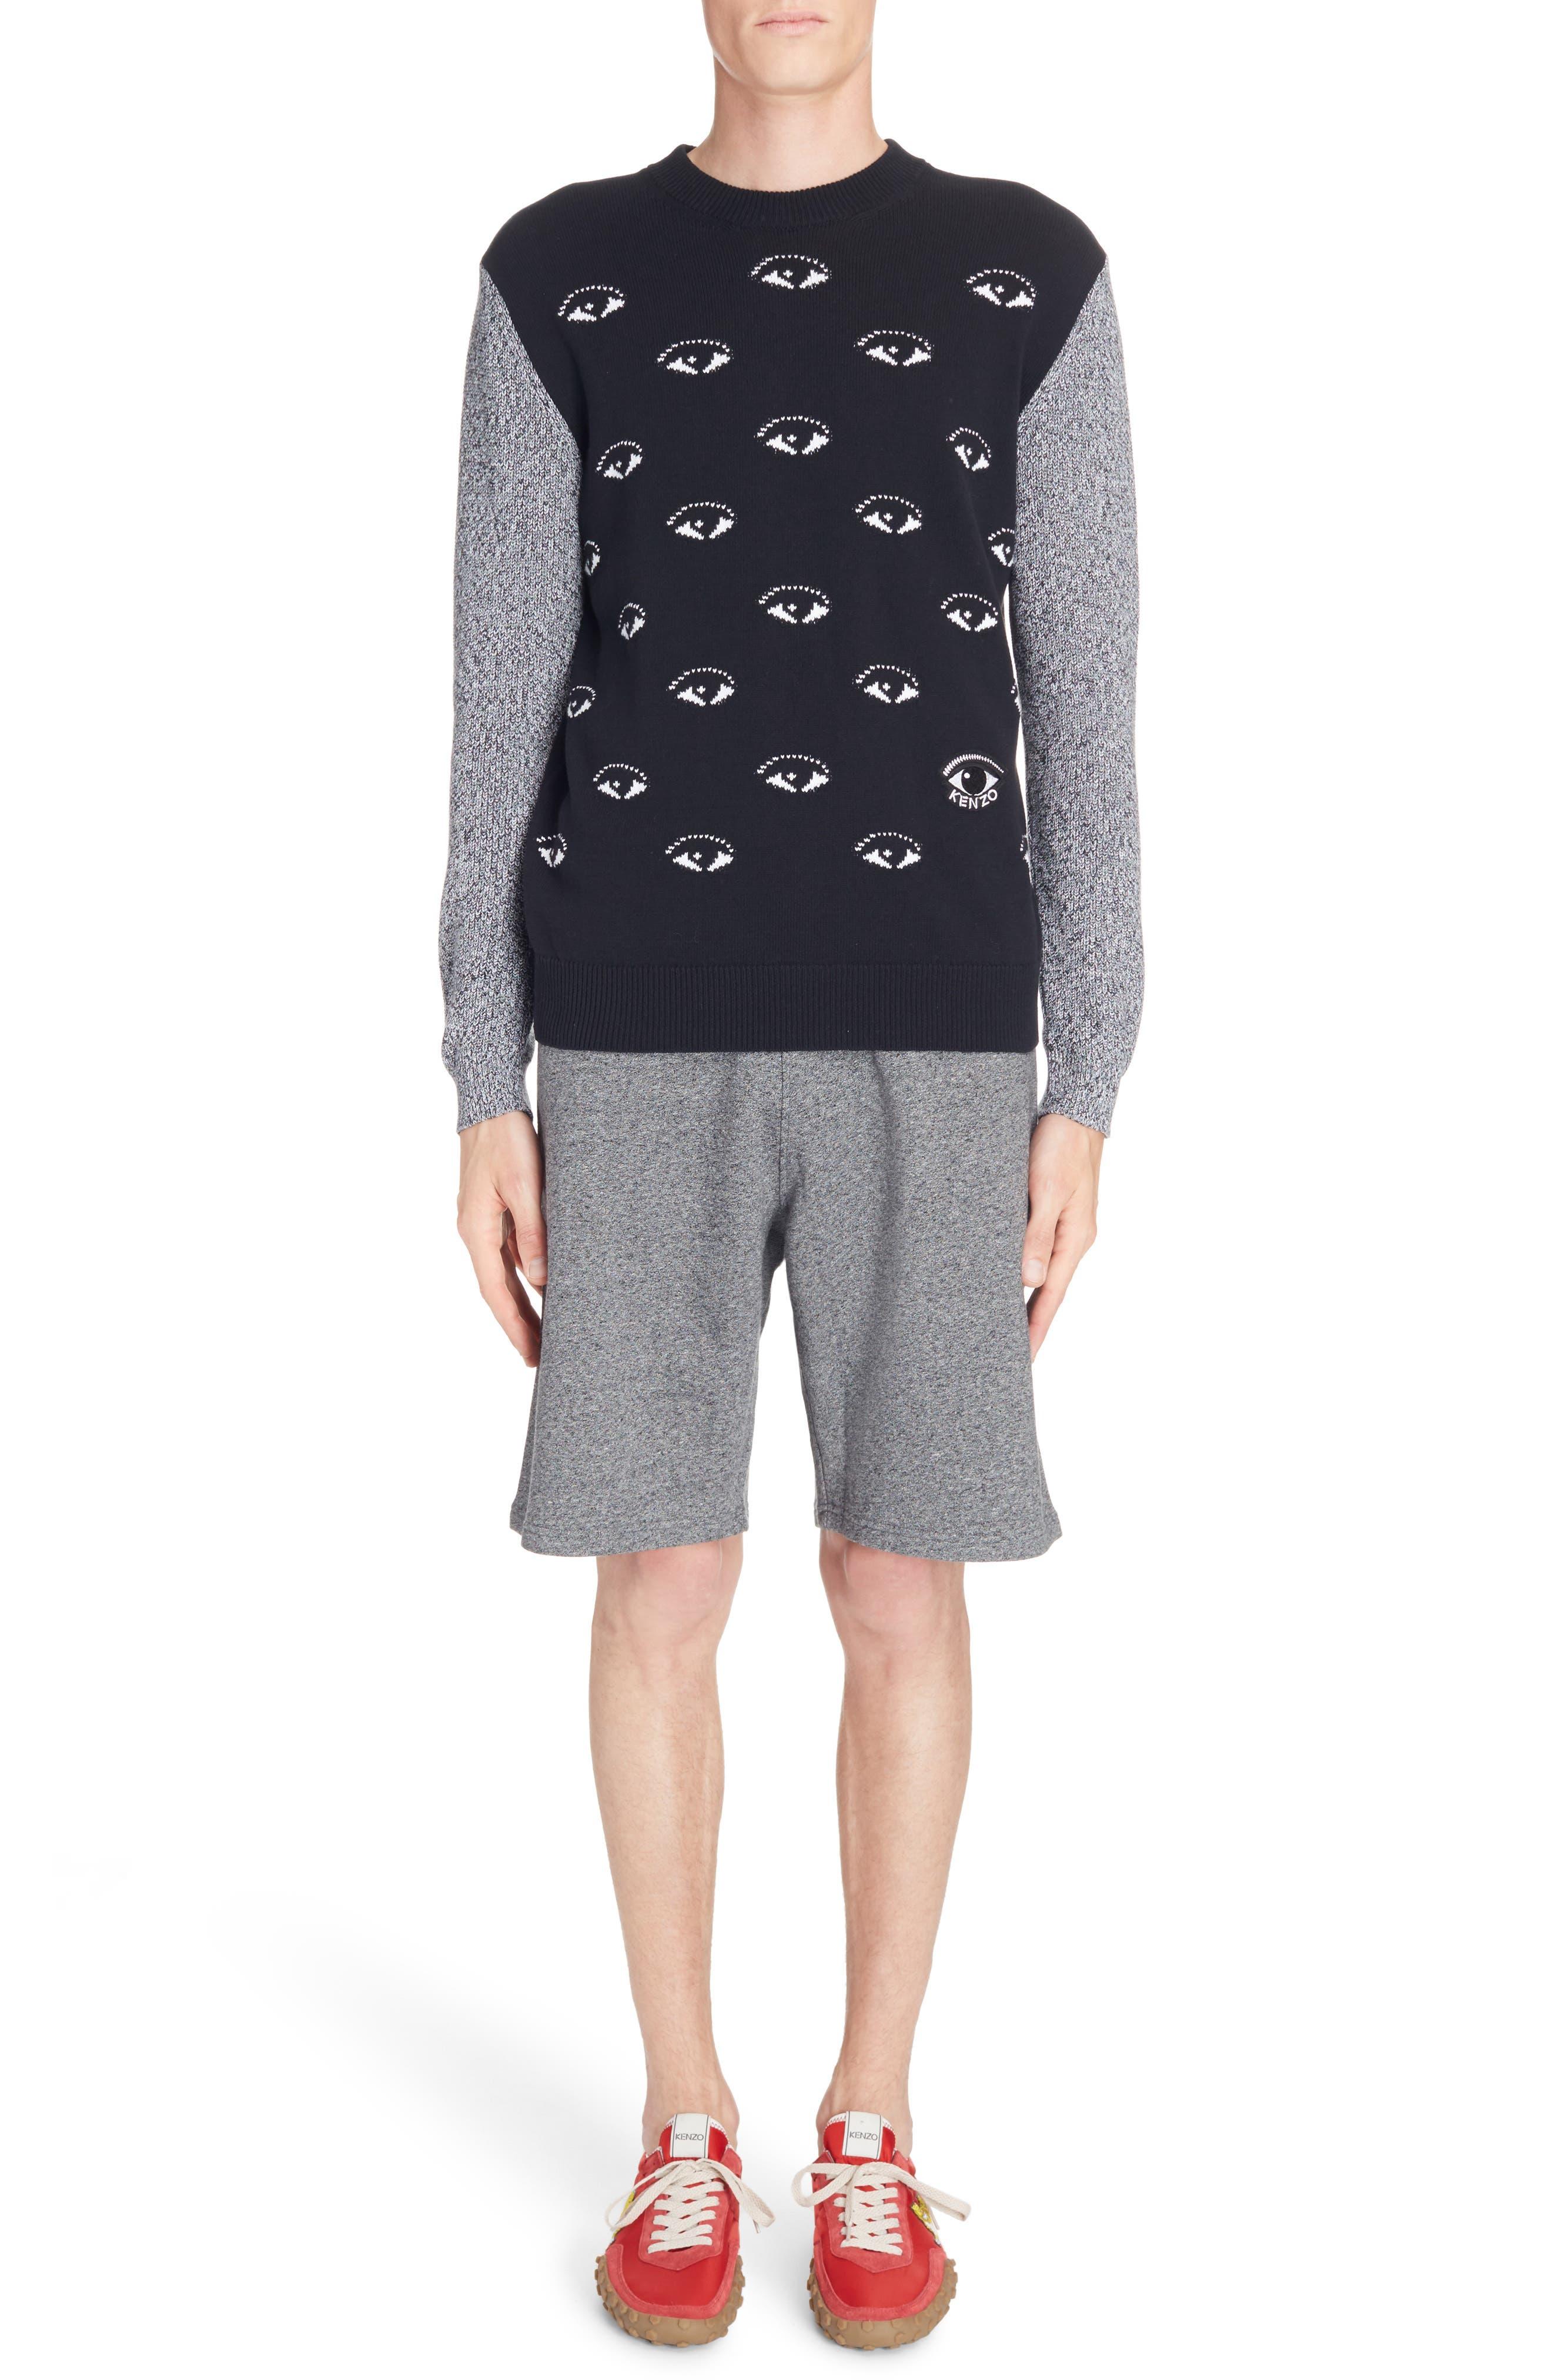 All Eyes Print Crewneck Sweater,                         Main,                         color, Black